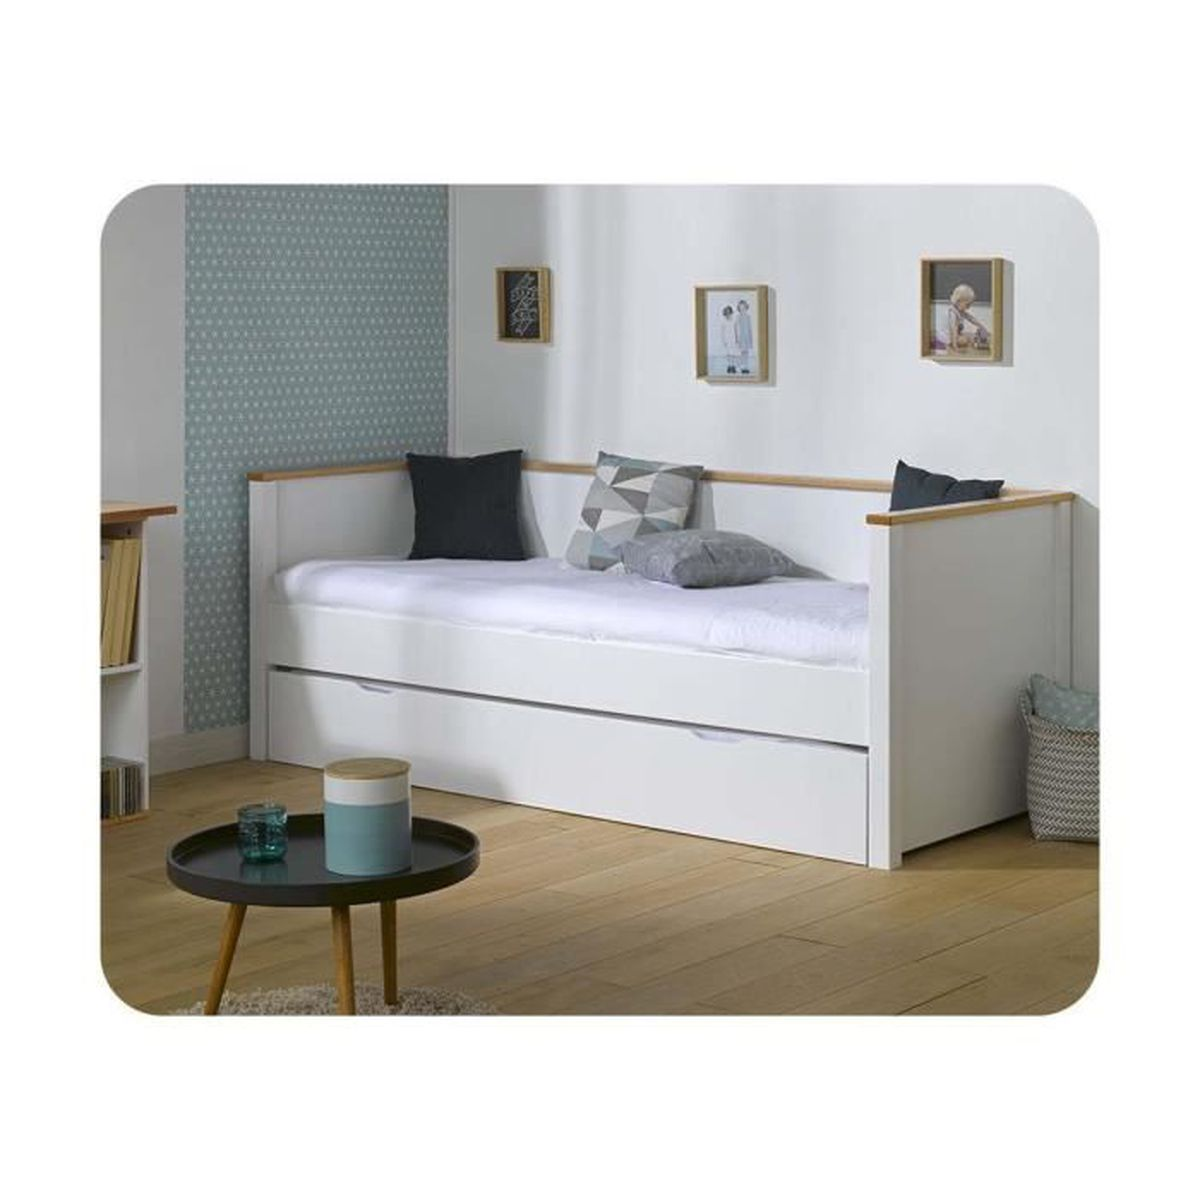 pack lit gigogne nova 80x200 cm avec 2 matelas achat vente lit gigogne pack lit gigogne nova. Black Bedroom Furniture Sets. Home Design Ideas